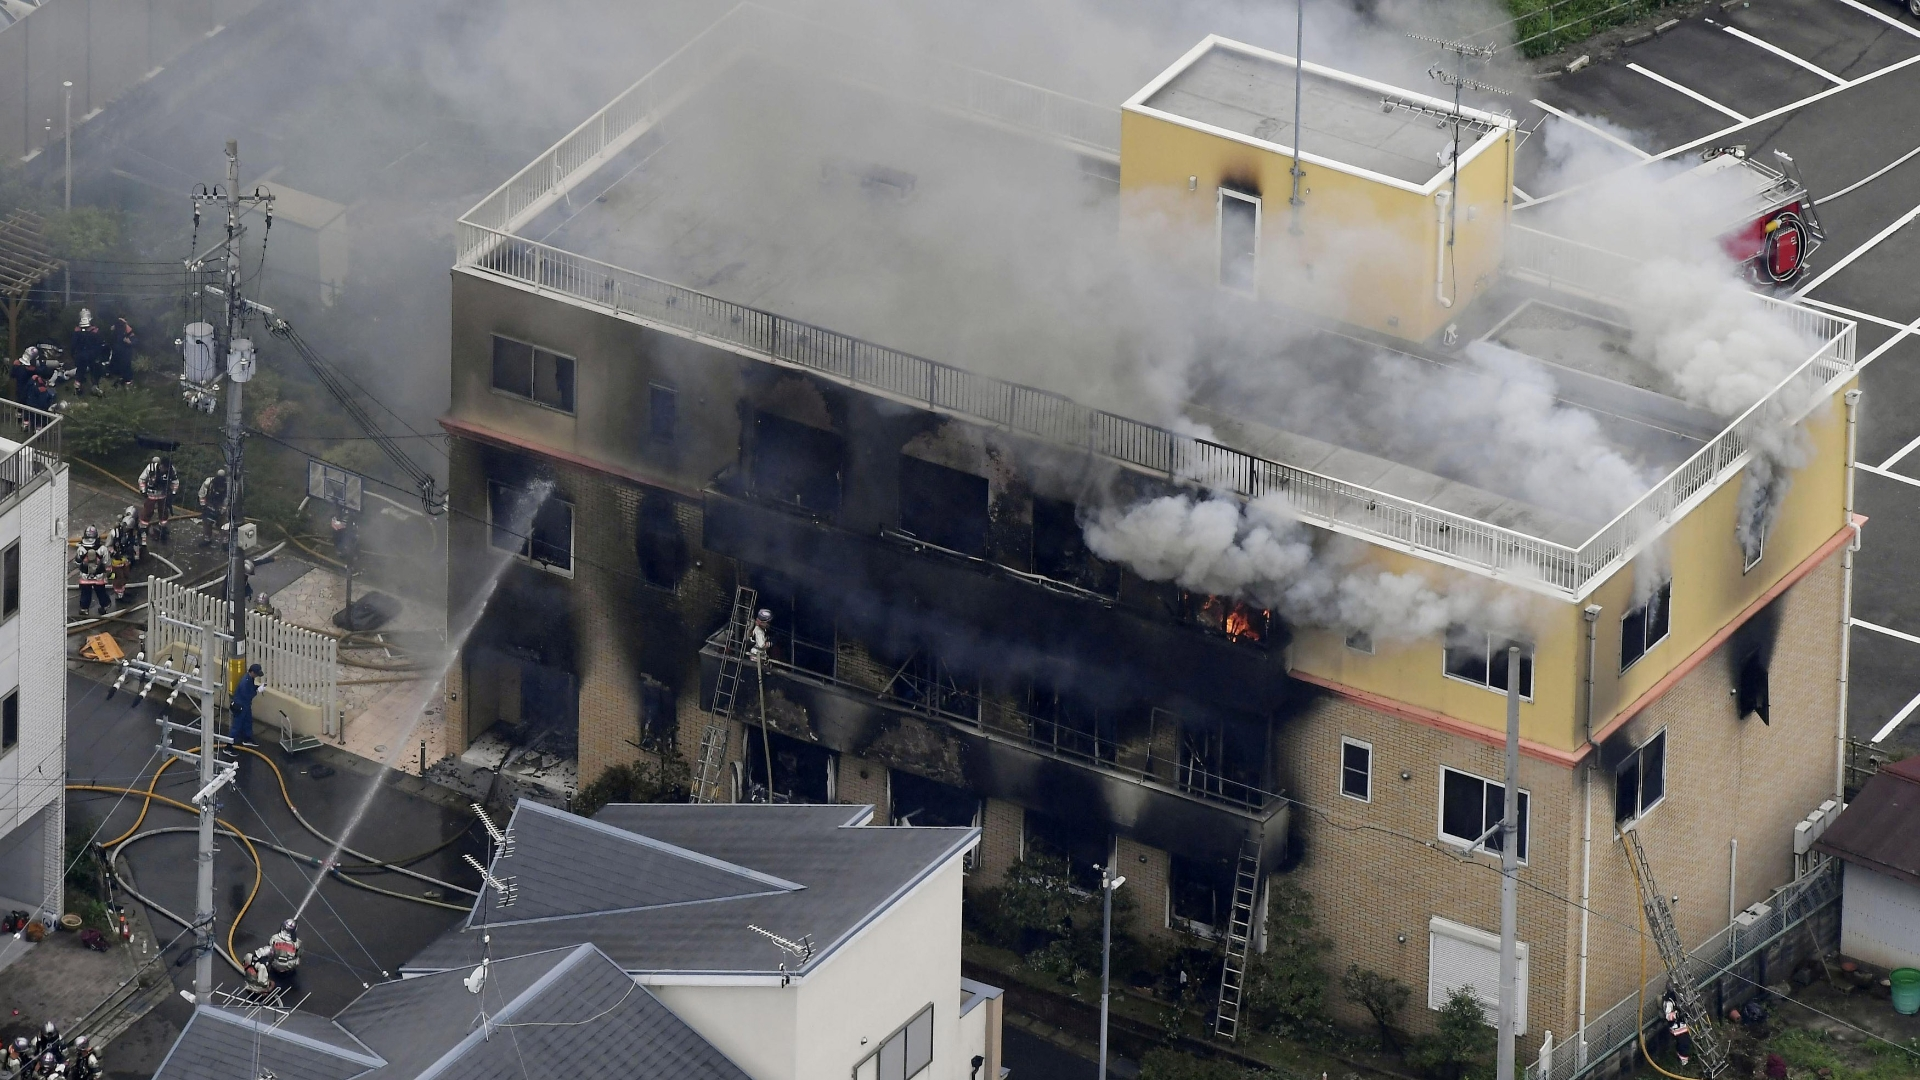 'Die!': Alleged arsonist turned a celebrated Japanese anime studio into a death trap